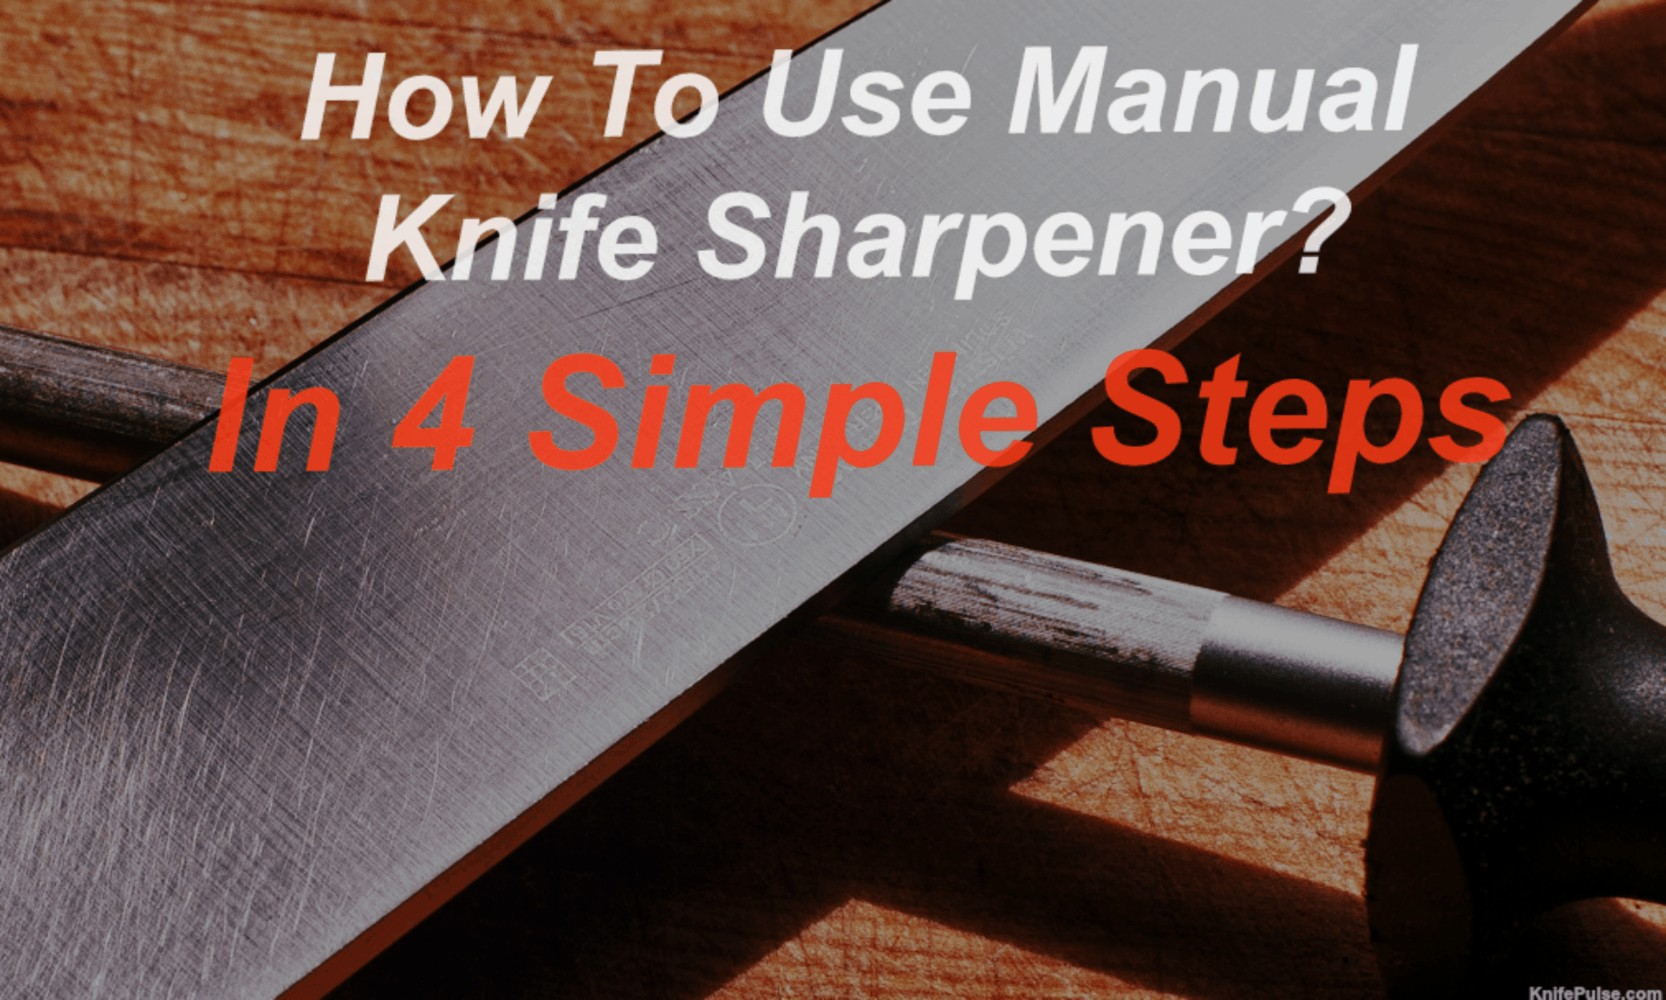 How To Use Manual Knife Sharpener